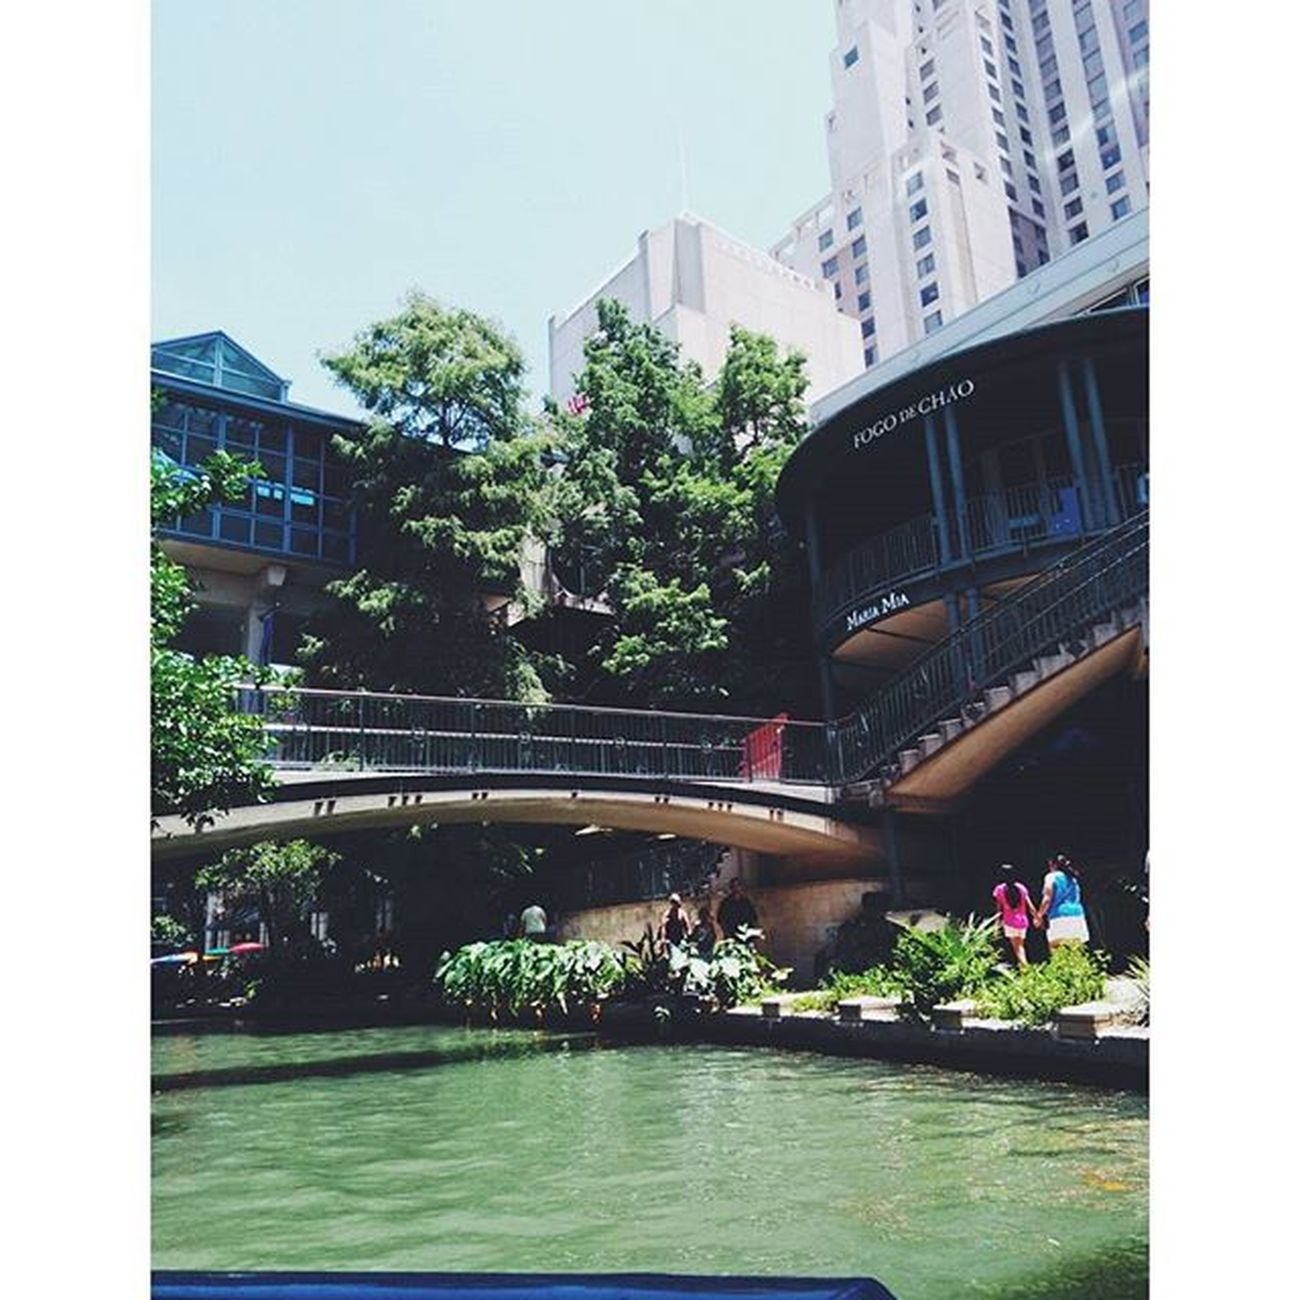 San Antonio River walk 😙. Twas so lovely with so much history❤. Sanantonio Sanantonioriverwalk Whosaysyoucantworkandhavefun Withmifamilia Sanantonioriverwalkboatride Photographyskillsonpoint